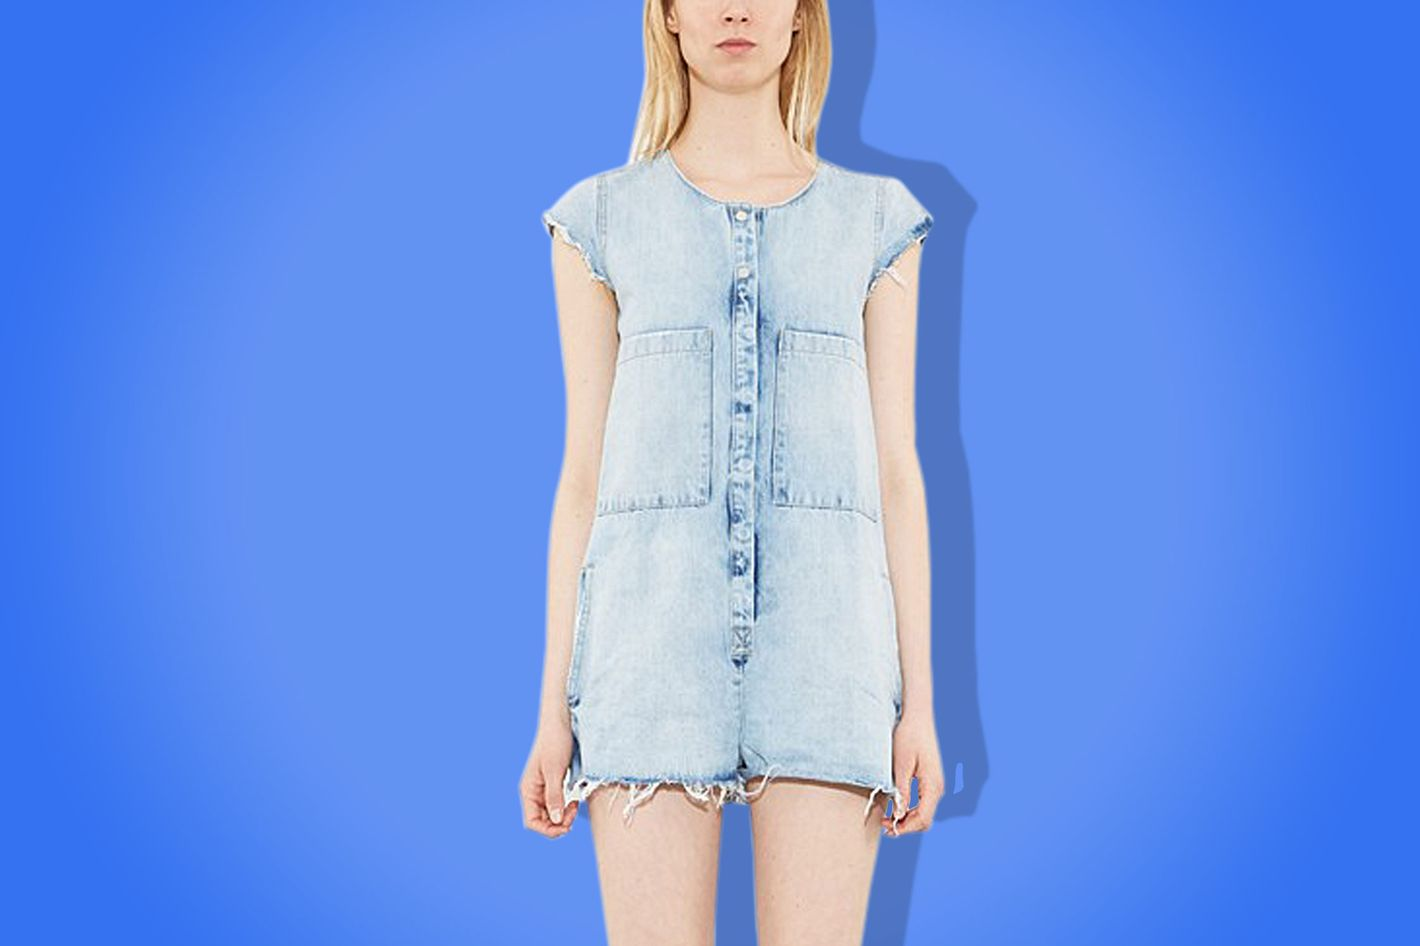 c0a4a2ac86 The Shapeless Denim Romper Is Summer s Most Practical Outfit